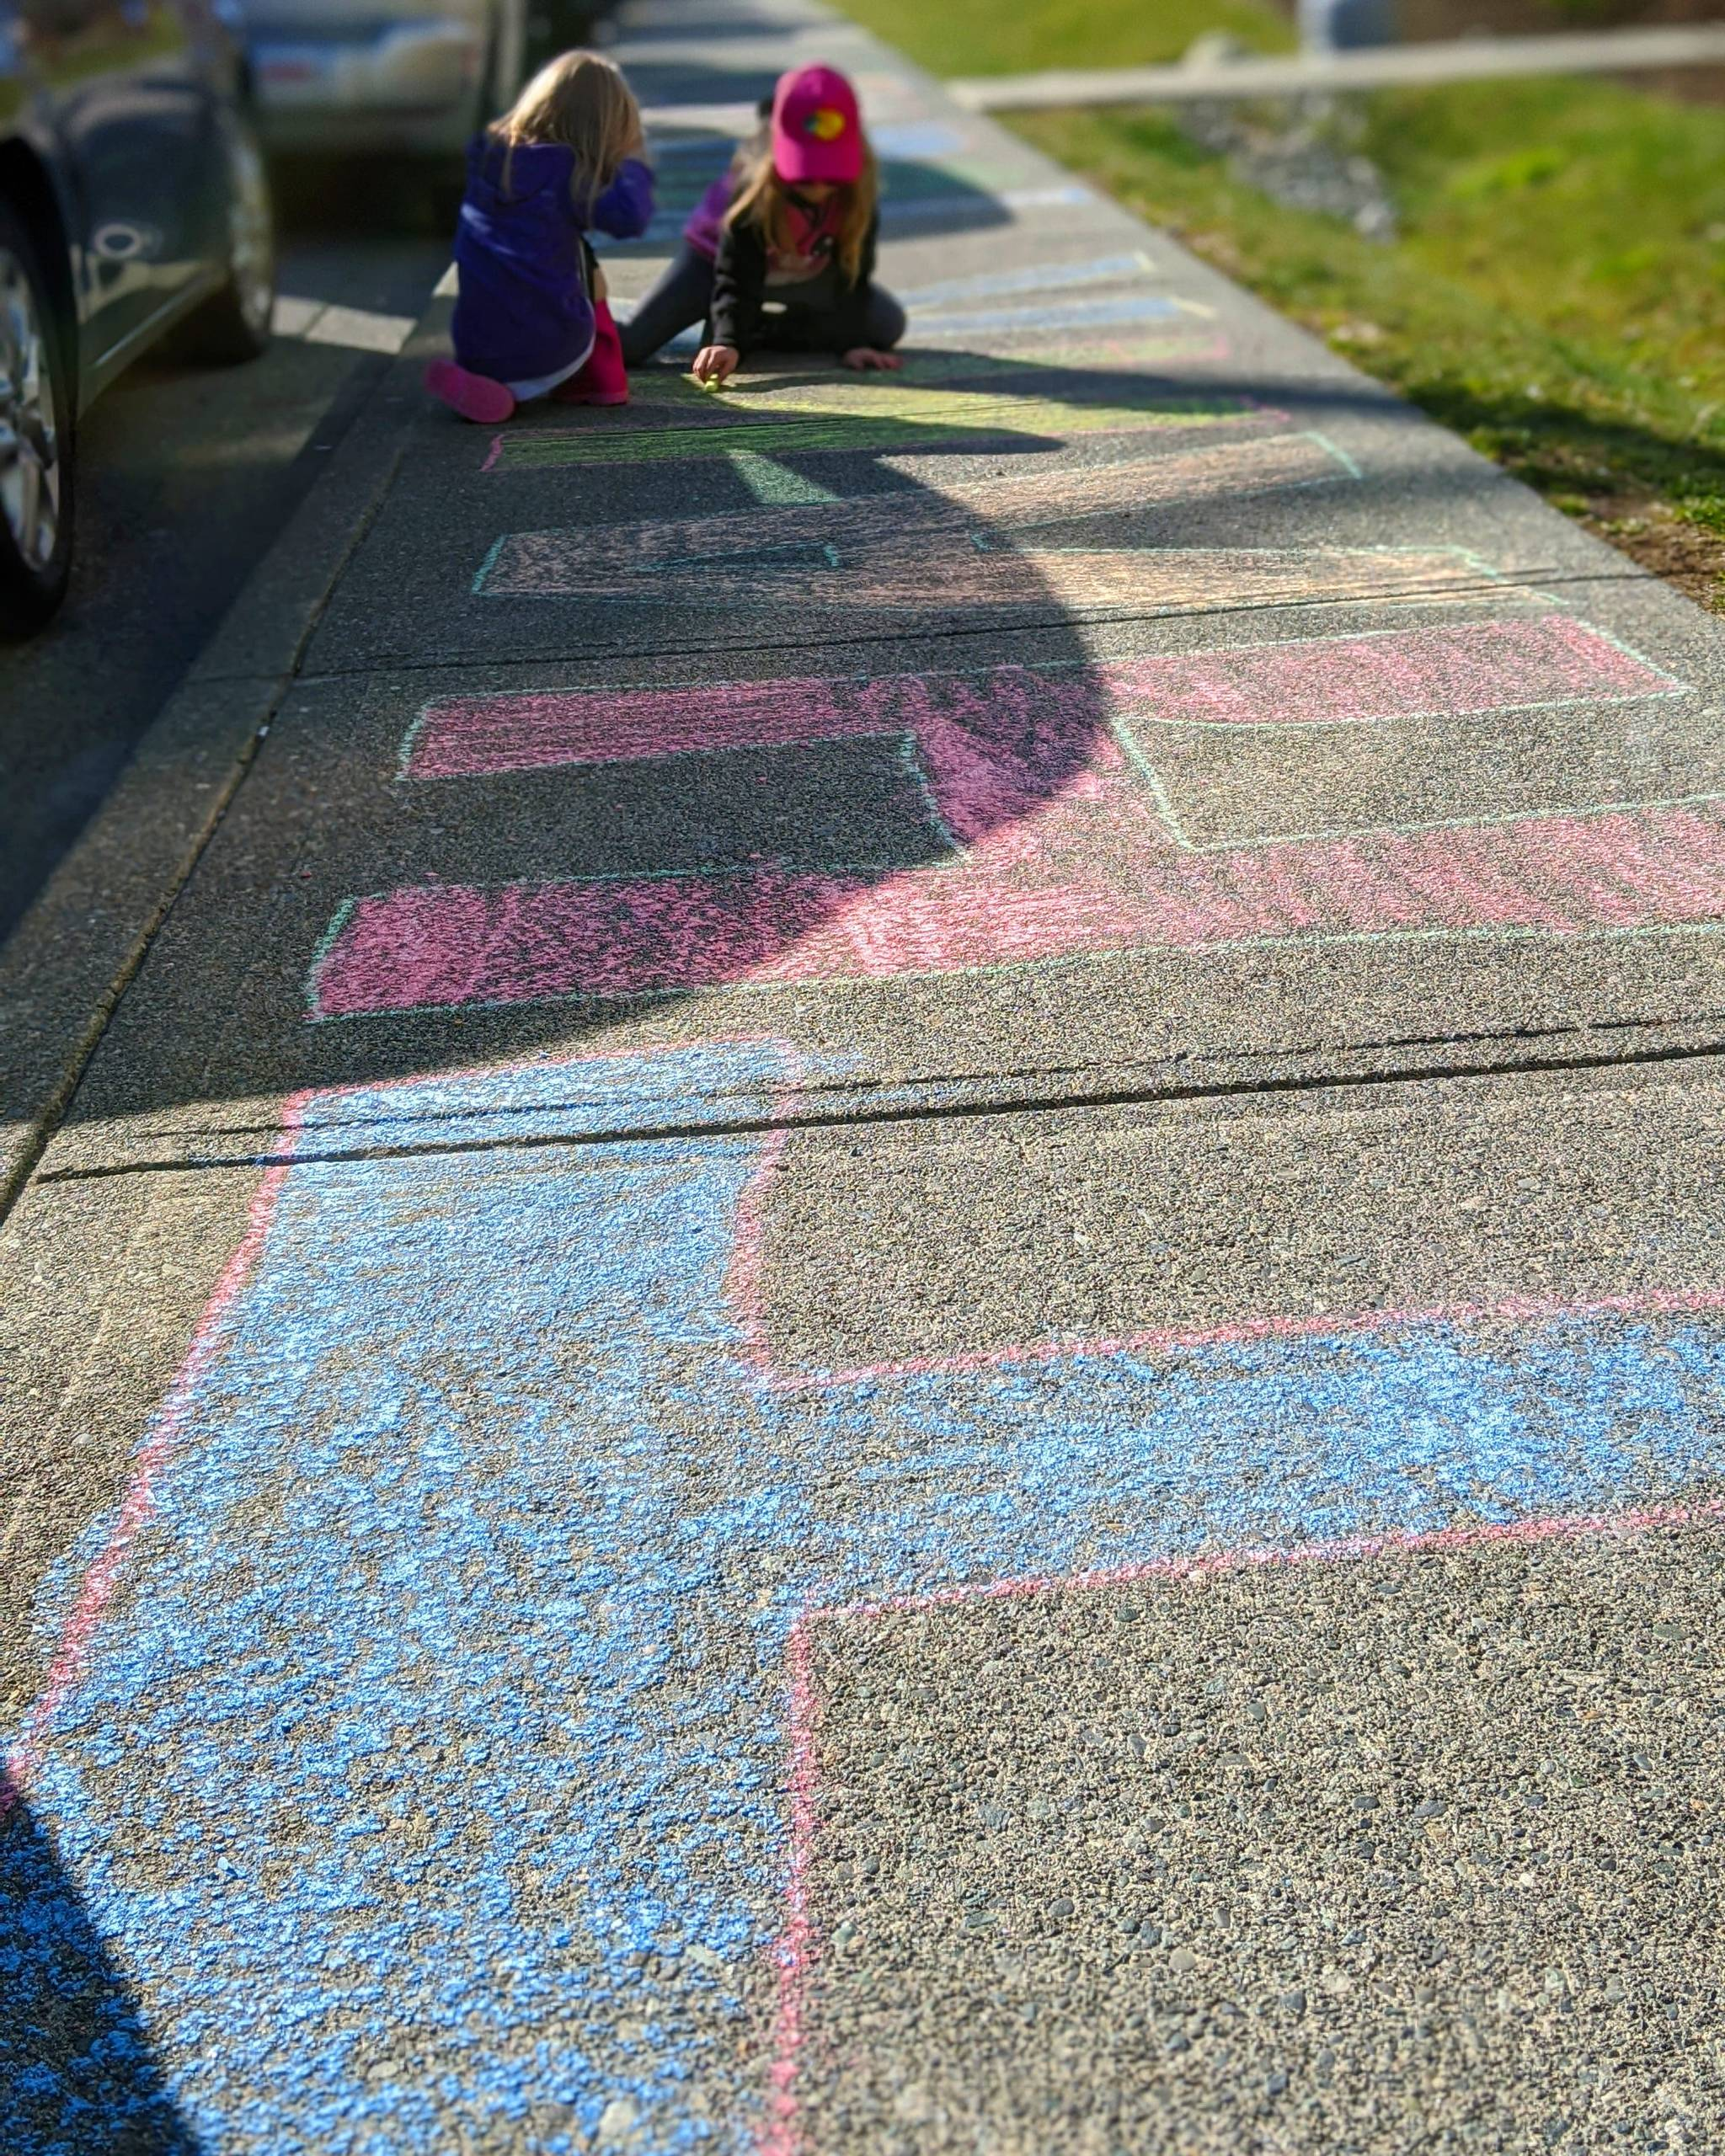 Sisters Kaila and Chloe Weaver create a chalk art thank-you message for Campbell River Hospital staff on March 18, 2020. Photo courtesy of David Weaver